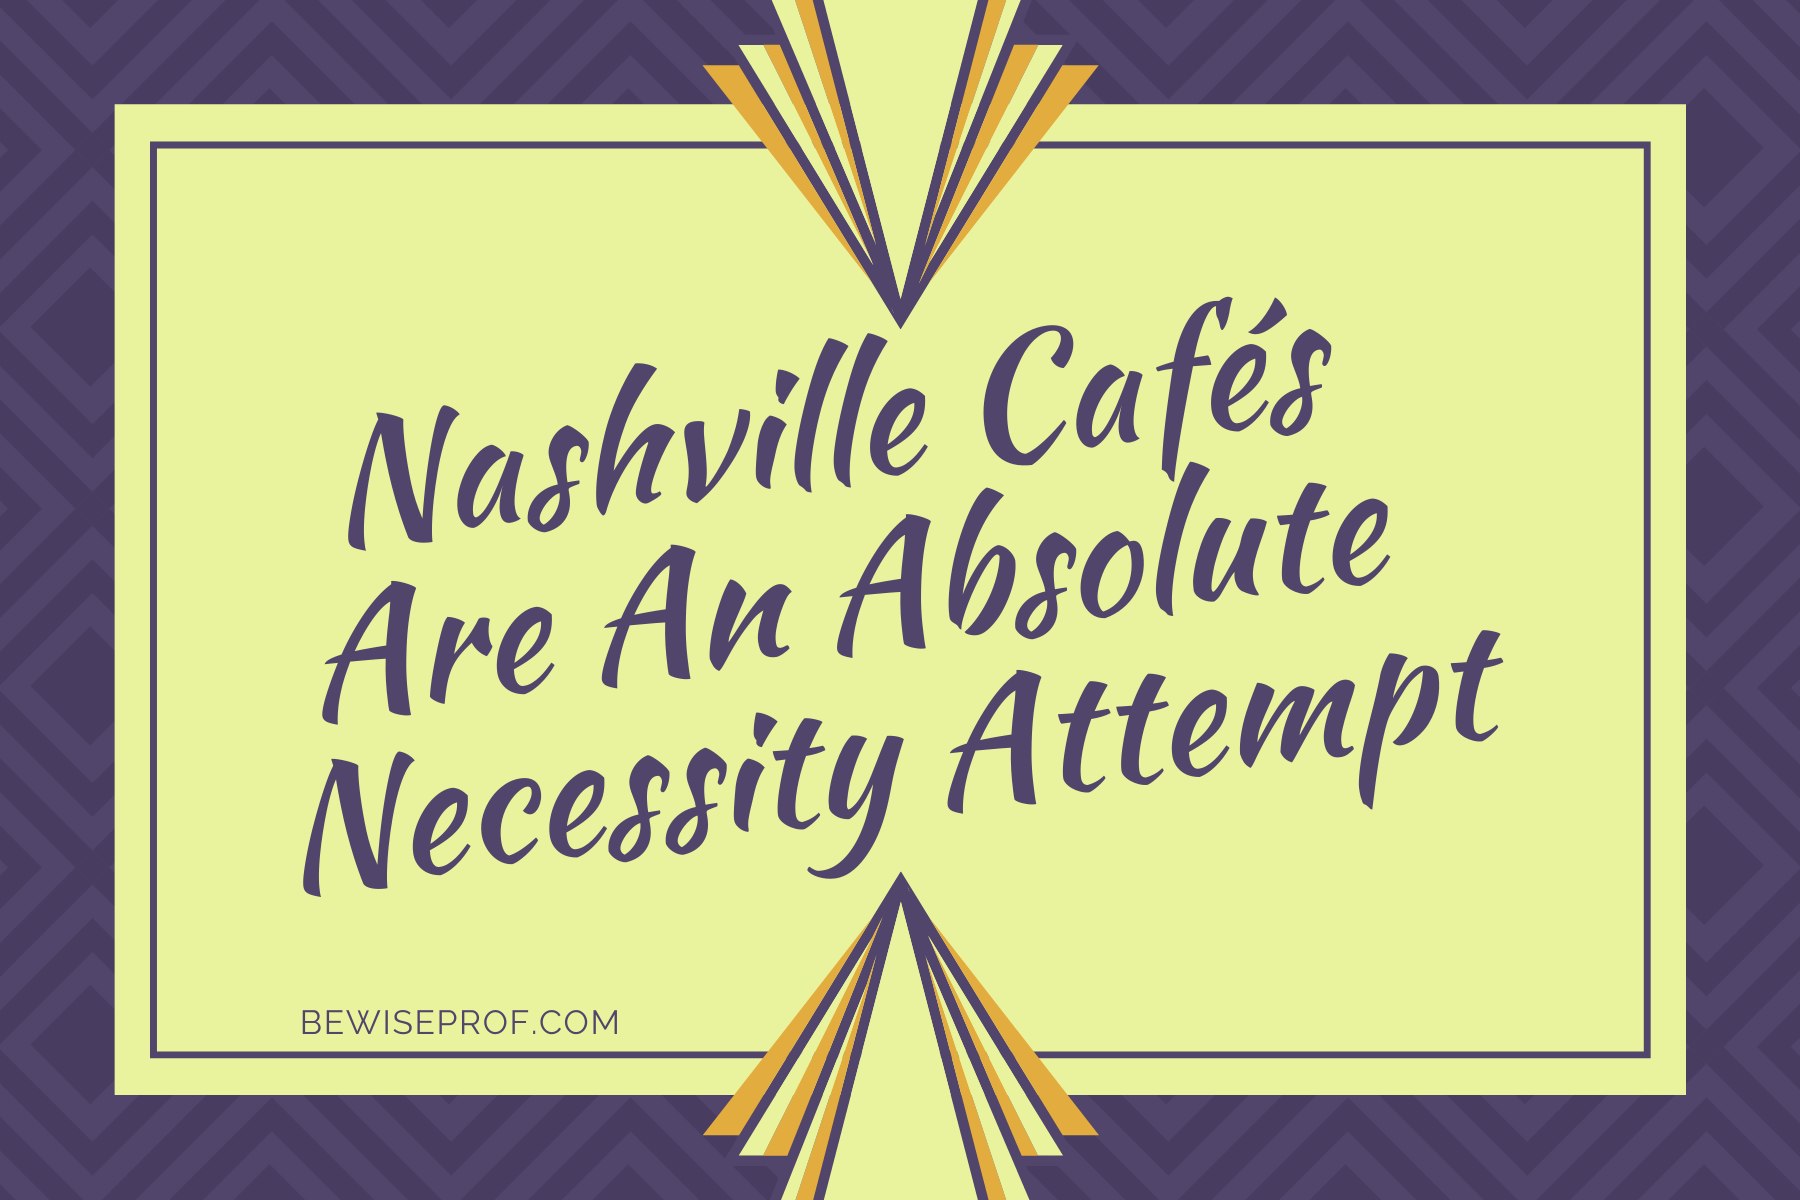 Photo of Nashville cafés are an absolute necessity attempt